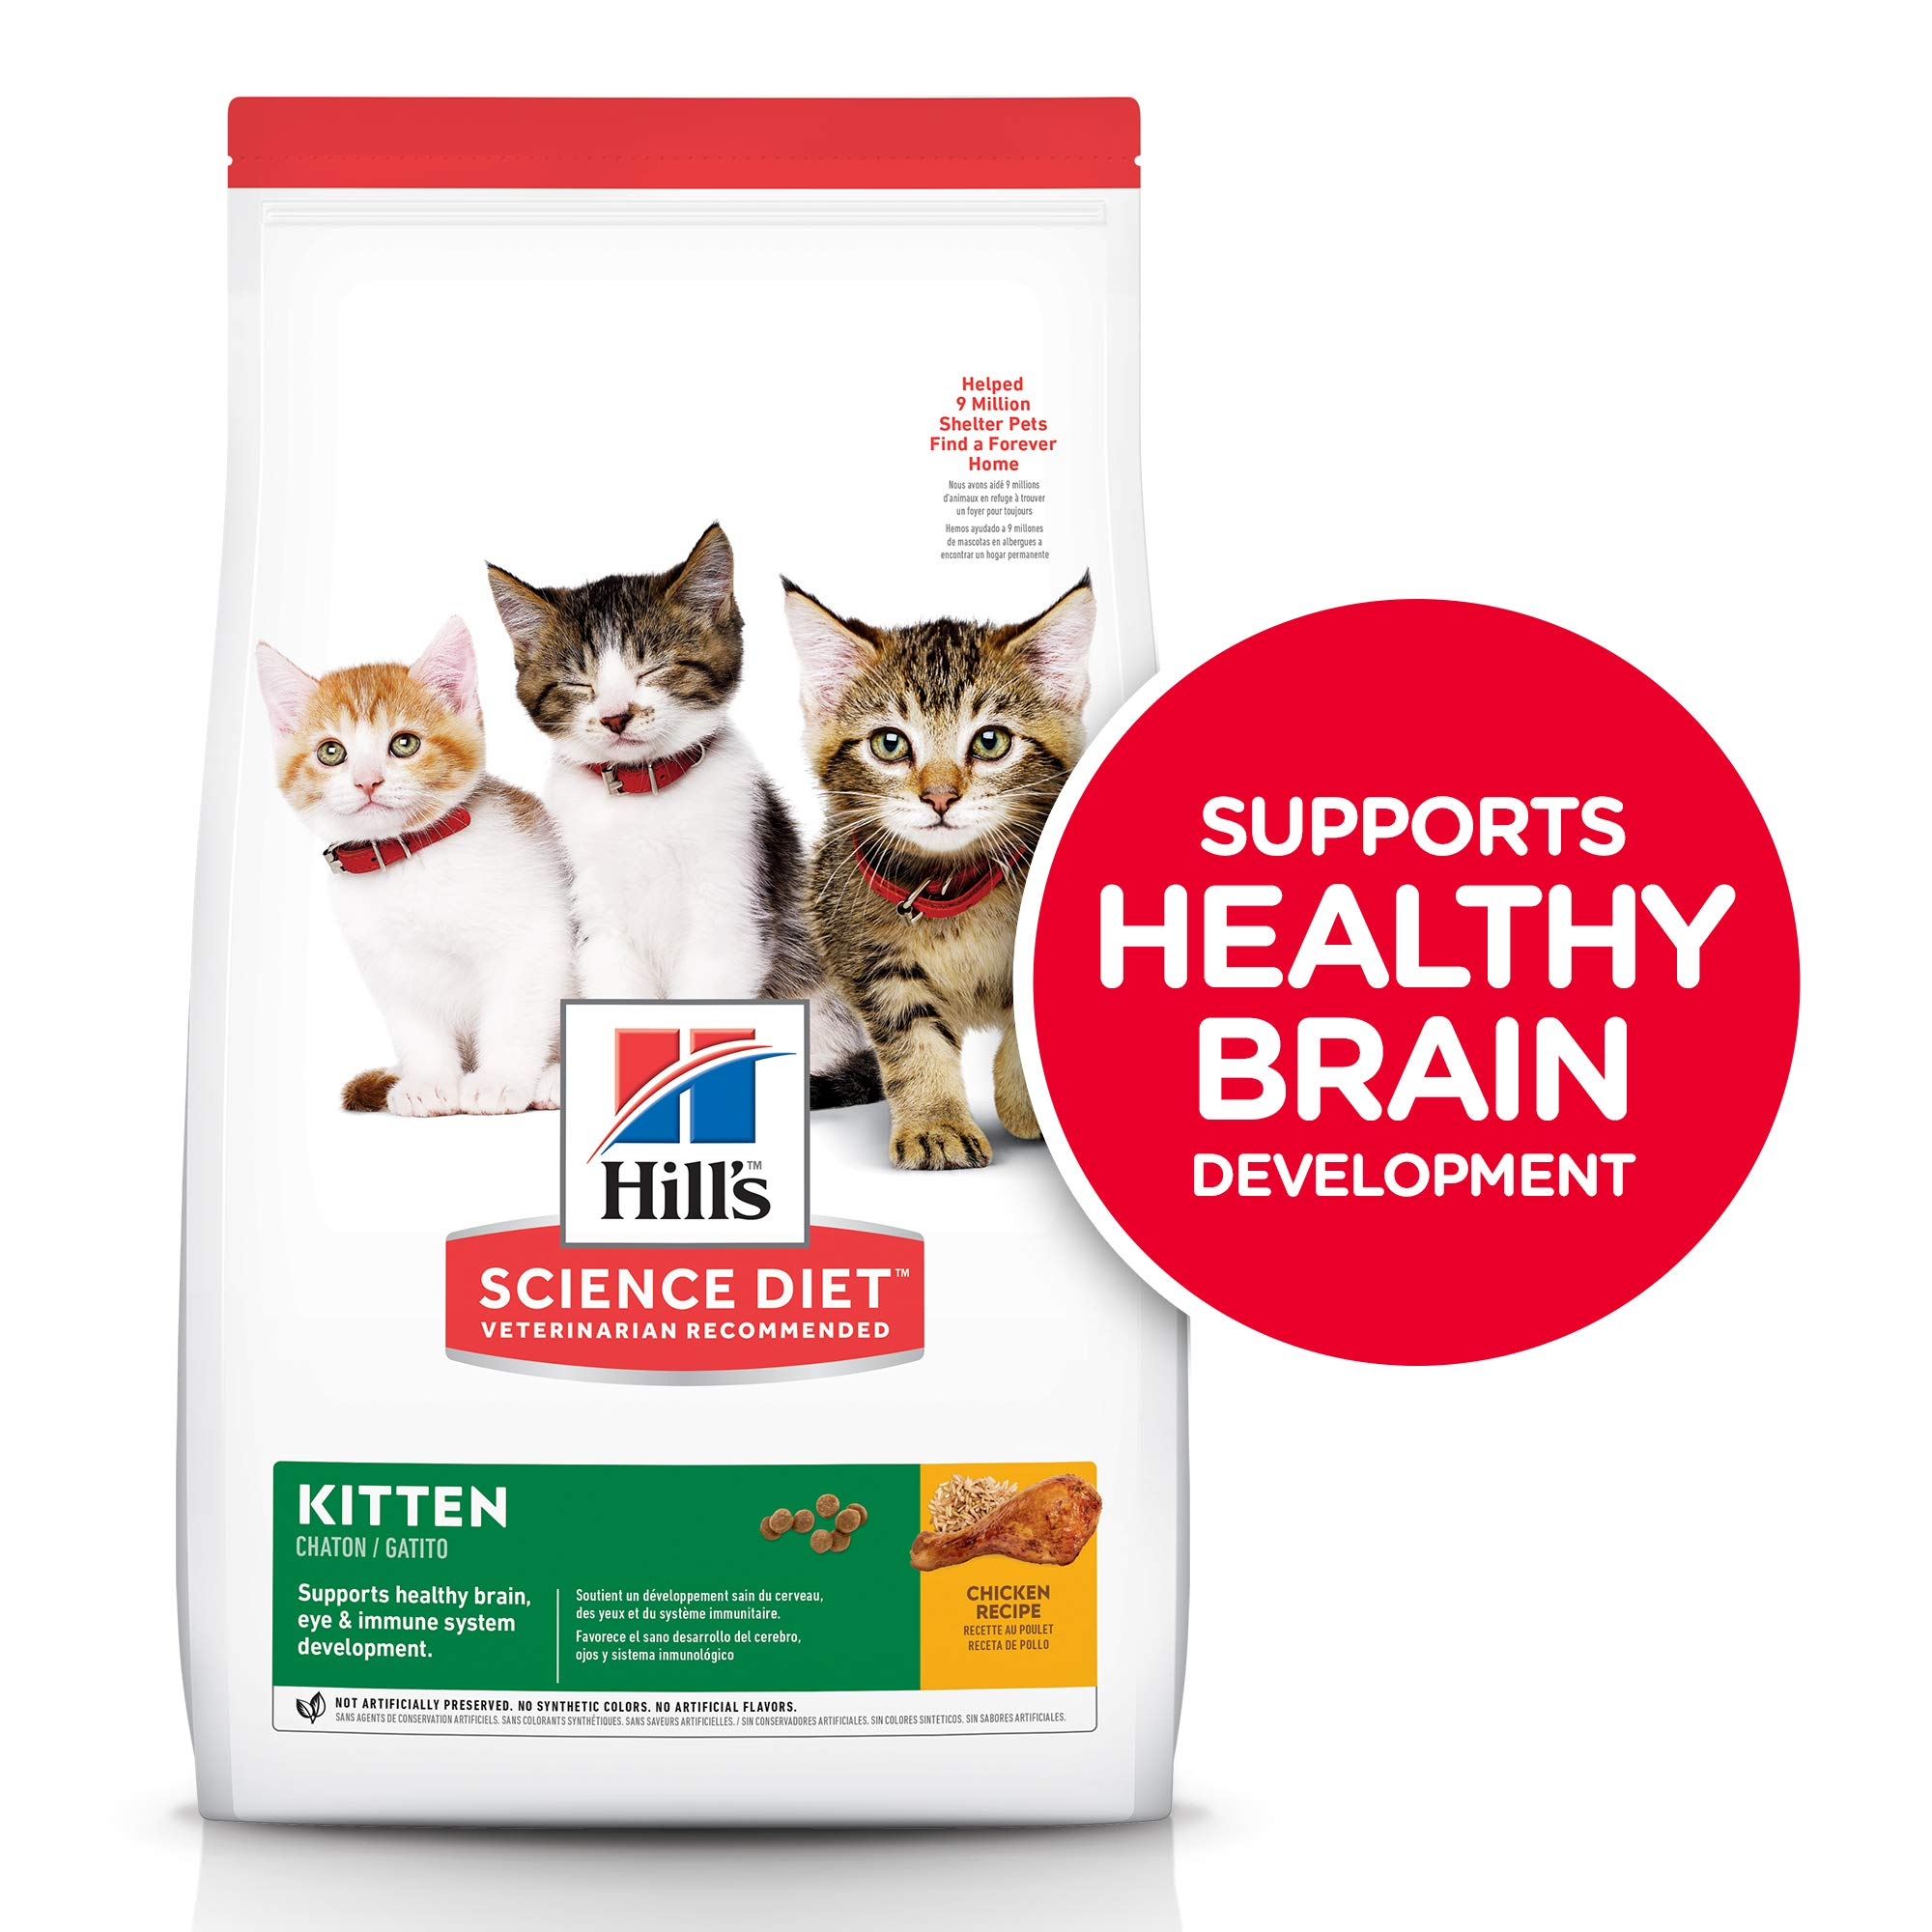 Hill's Science Diet Dry Cat Food, Kitten, Chicken Recipe, 15.5 lb Bag by Hill's Science Diet